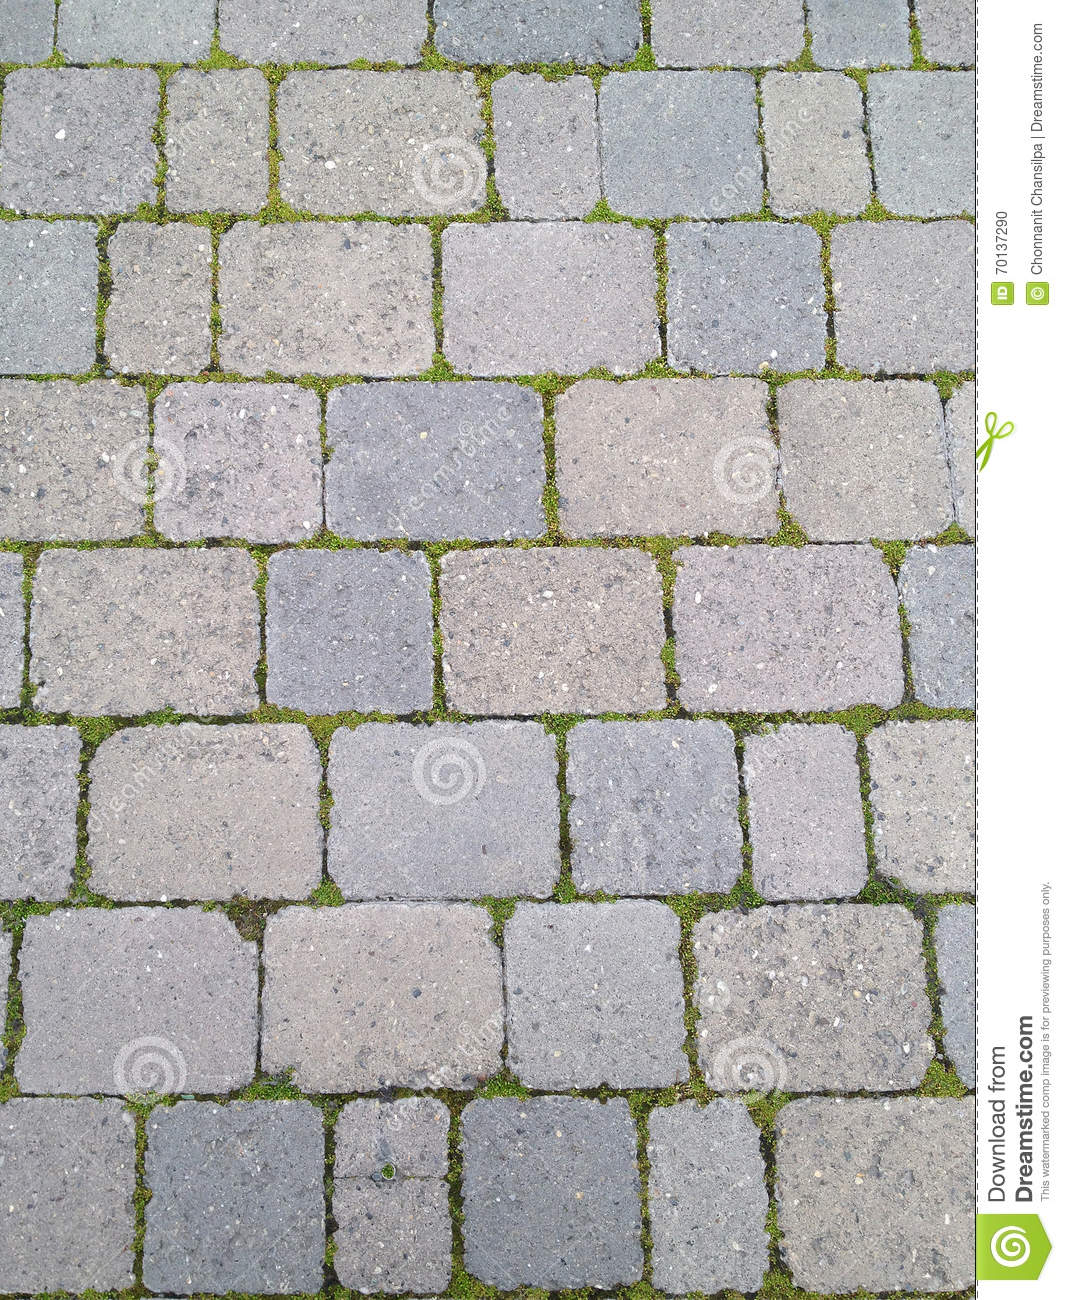 Cement block floor with grass in between stock photography for Concrete block floor